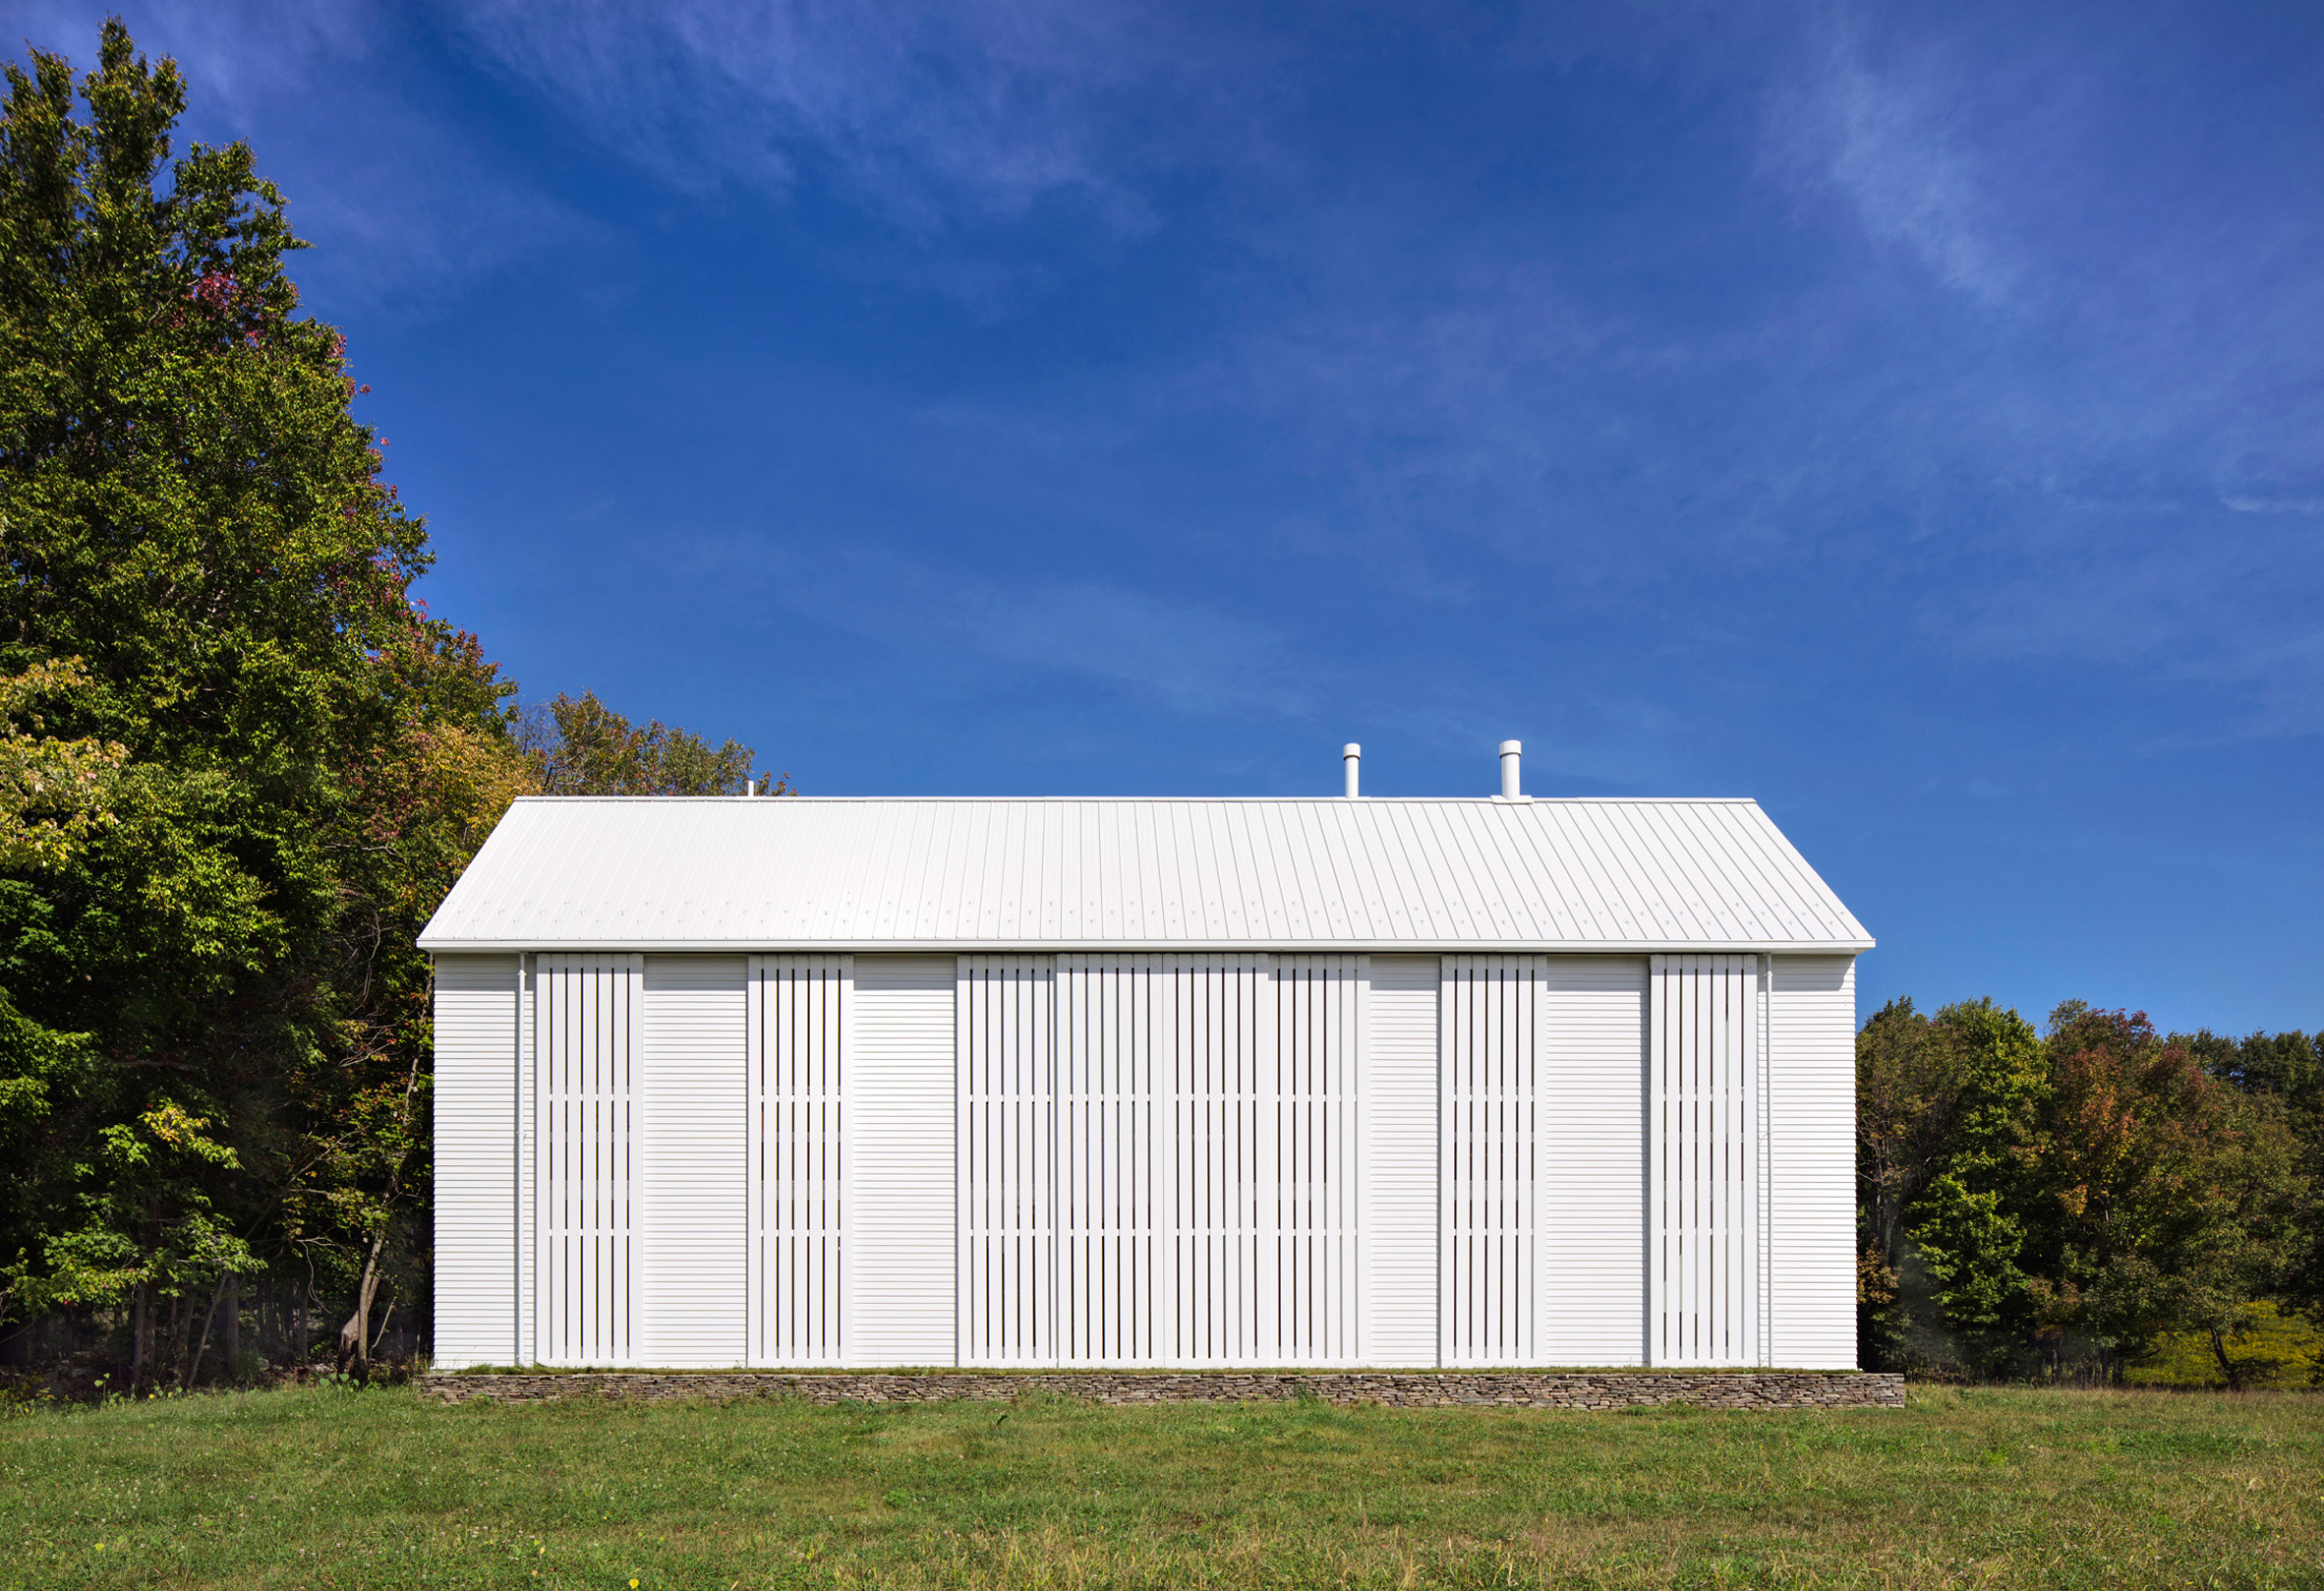 Huge rolling shutters shade pennsylvania farmhouse by for Anderson architects